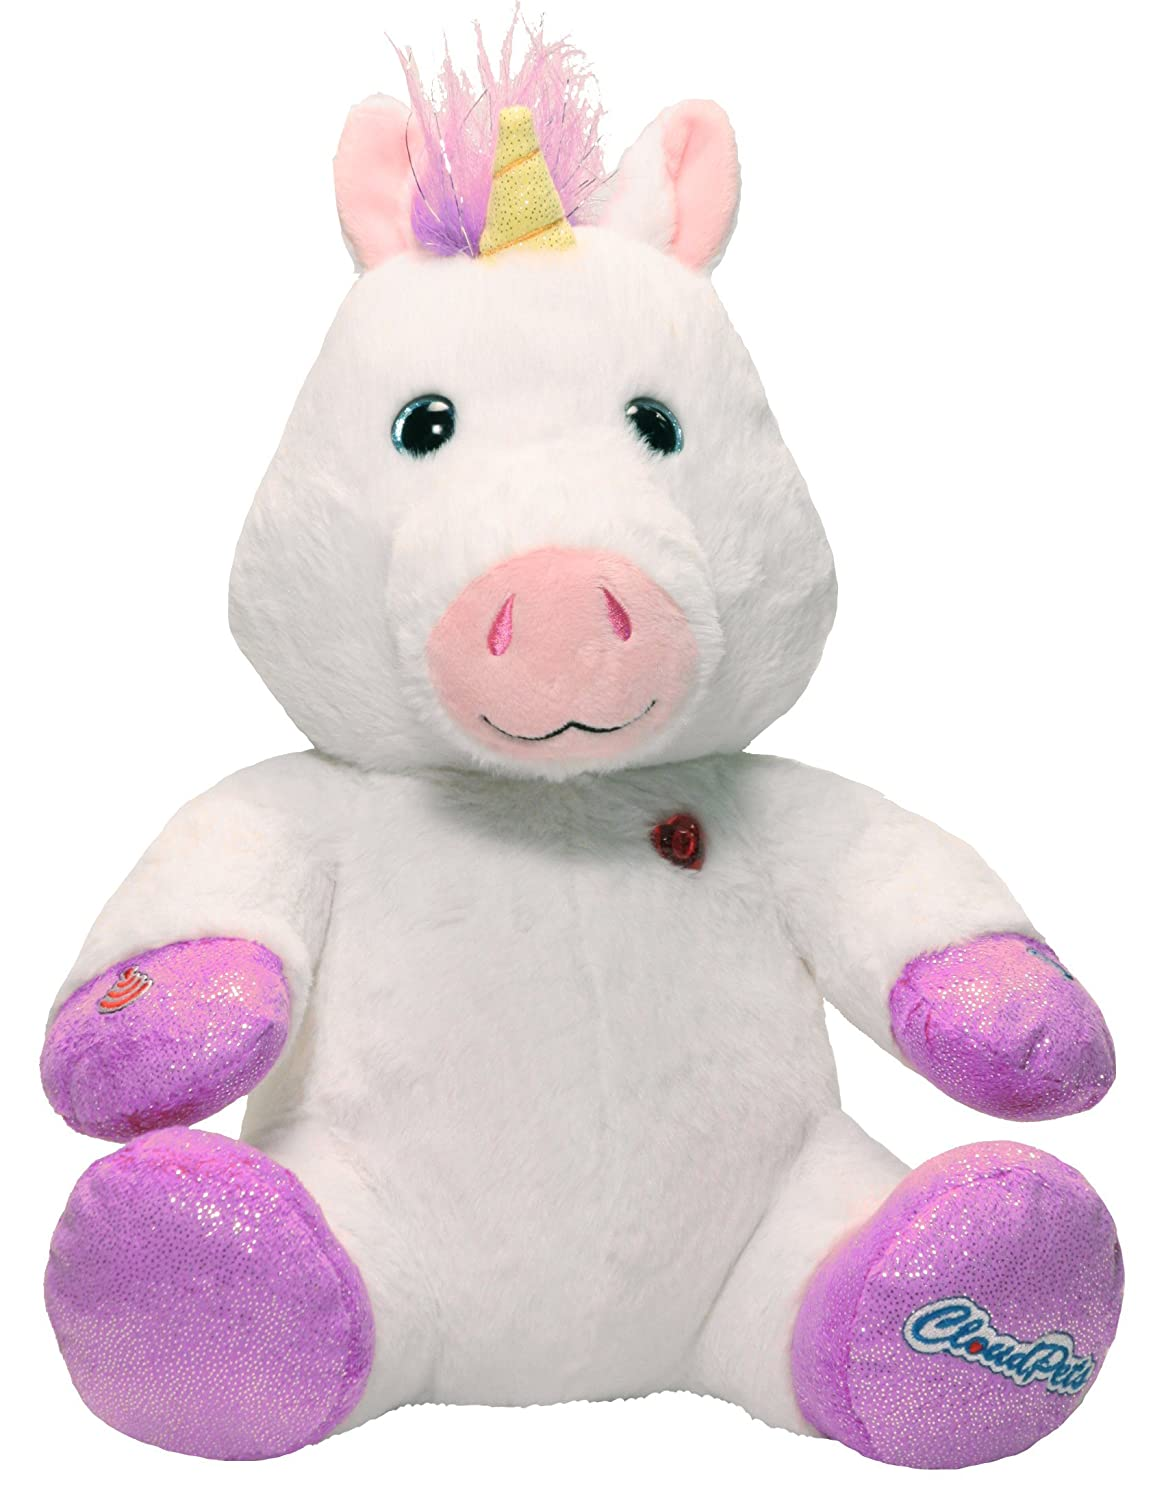 Amazon.com: CloudPets 12in Talking Unicorn - The Adorable, Huggable Pet to Keep in Touch Through the Cloud, Recordable Stuffed Animal: Toys & Games